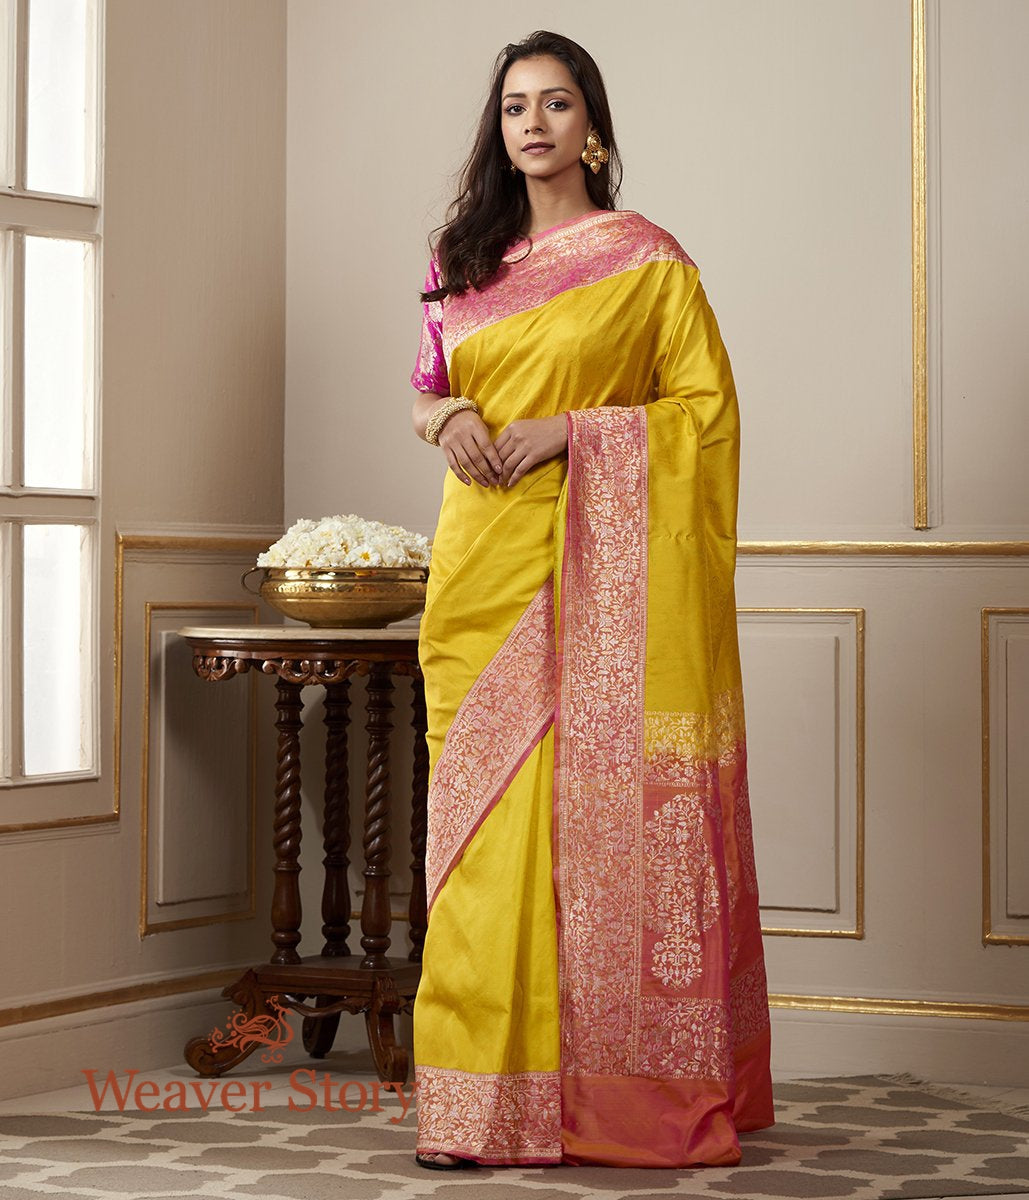 Handwoven Yellow Banarasi Tanchoi Saree with Kadhwa Border in Pink with Woven Leaf Motifs